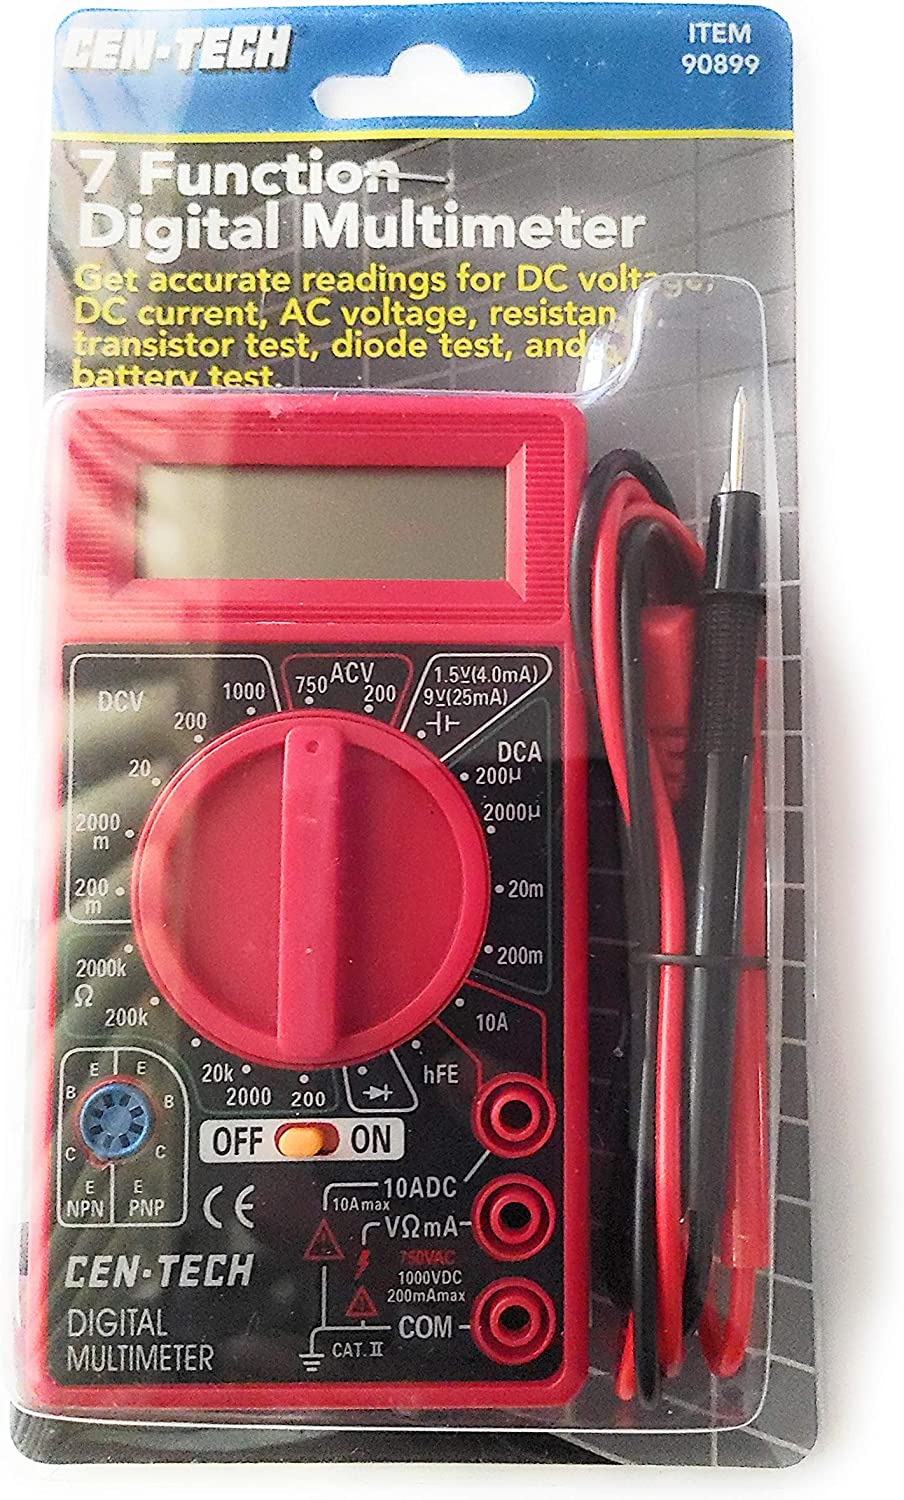 Power Tester Digital Multimeter Voltage Current Meter Black or White 0-99 hours